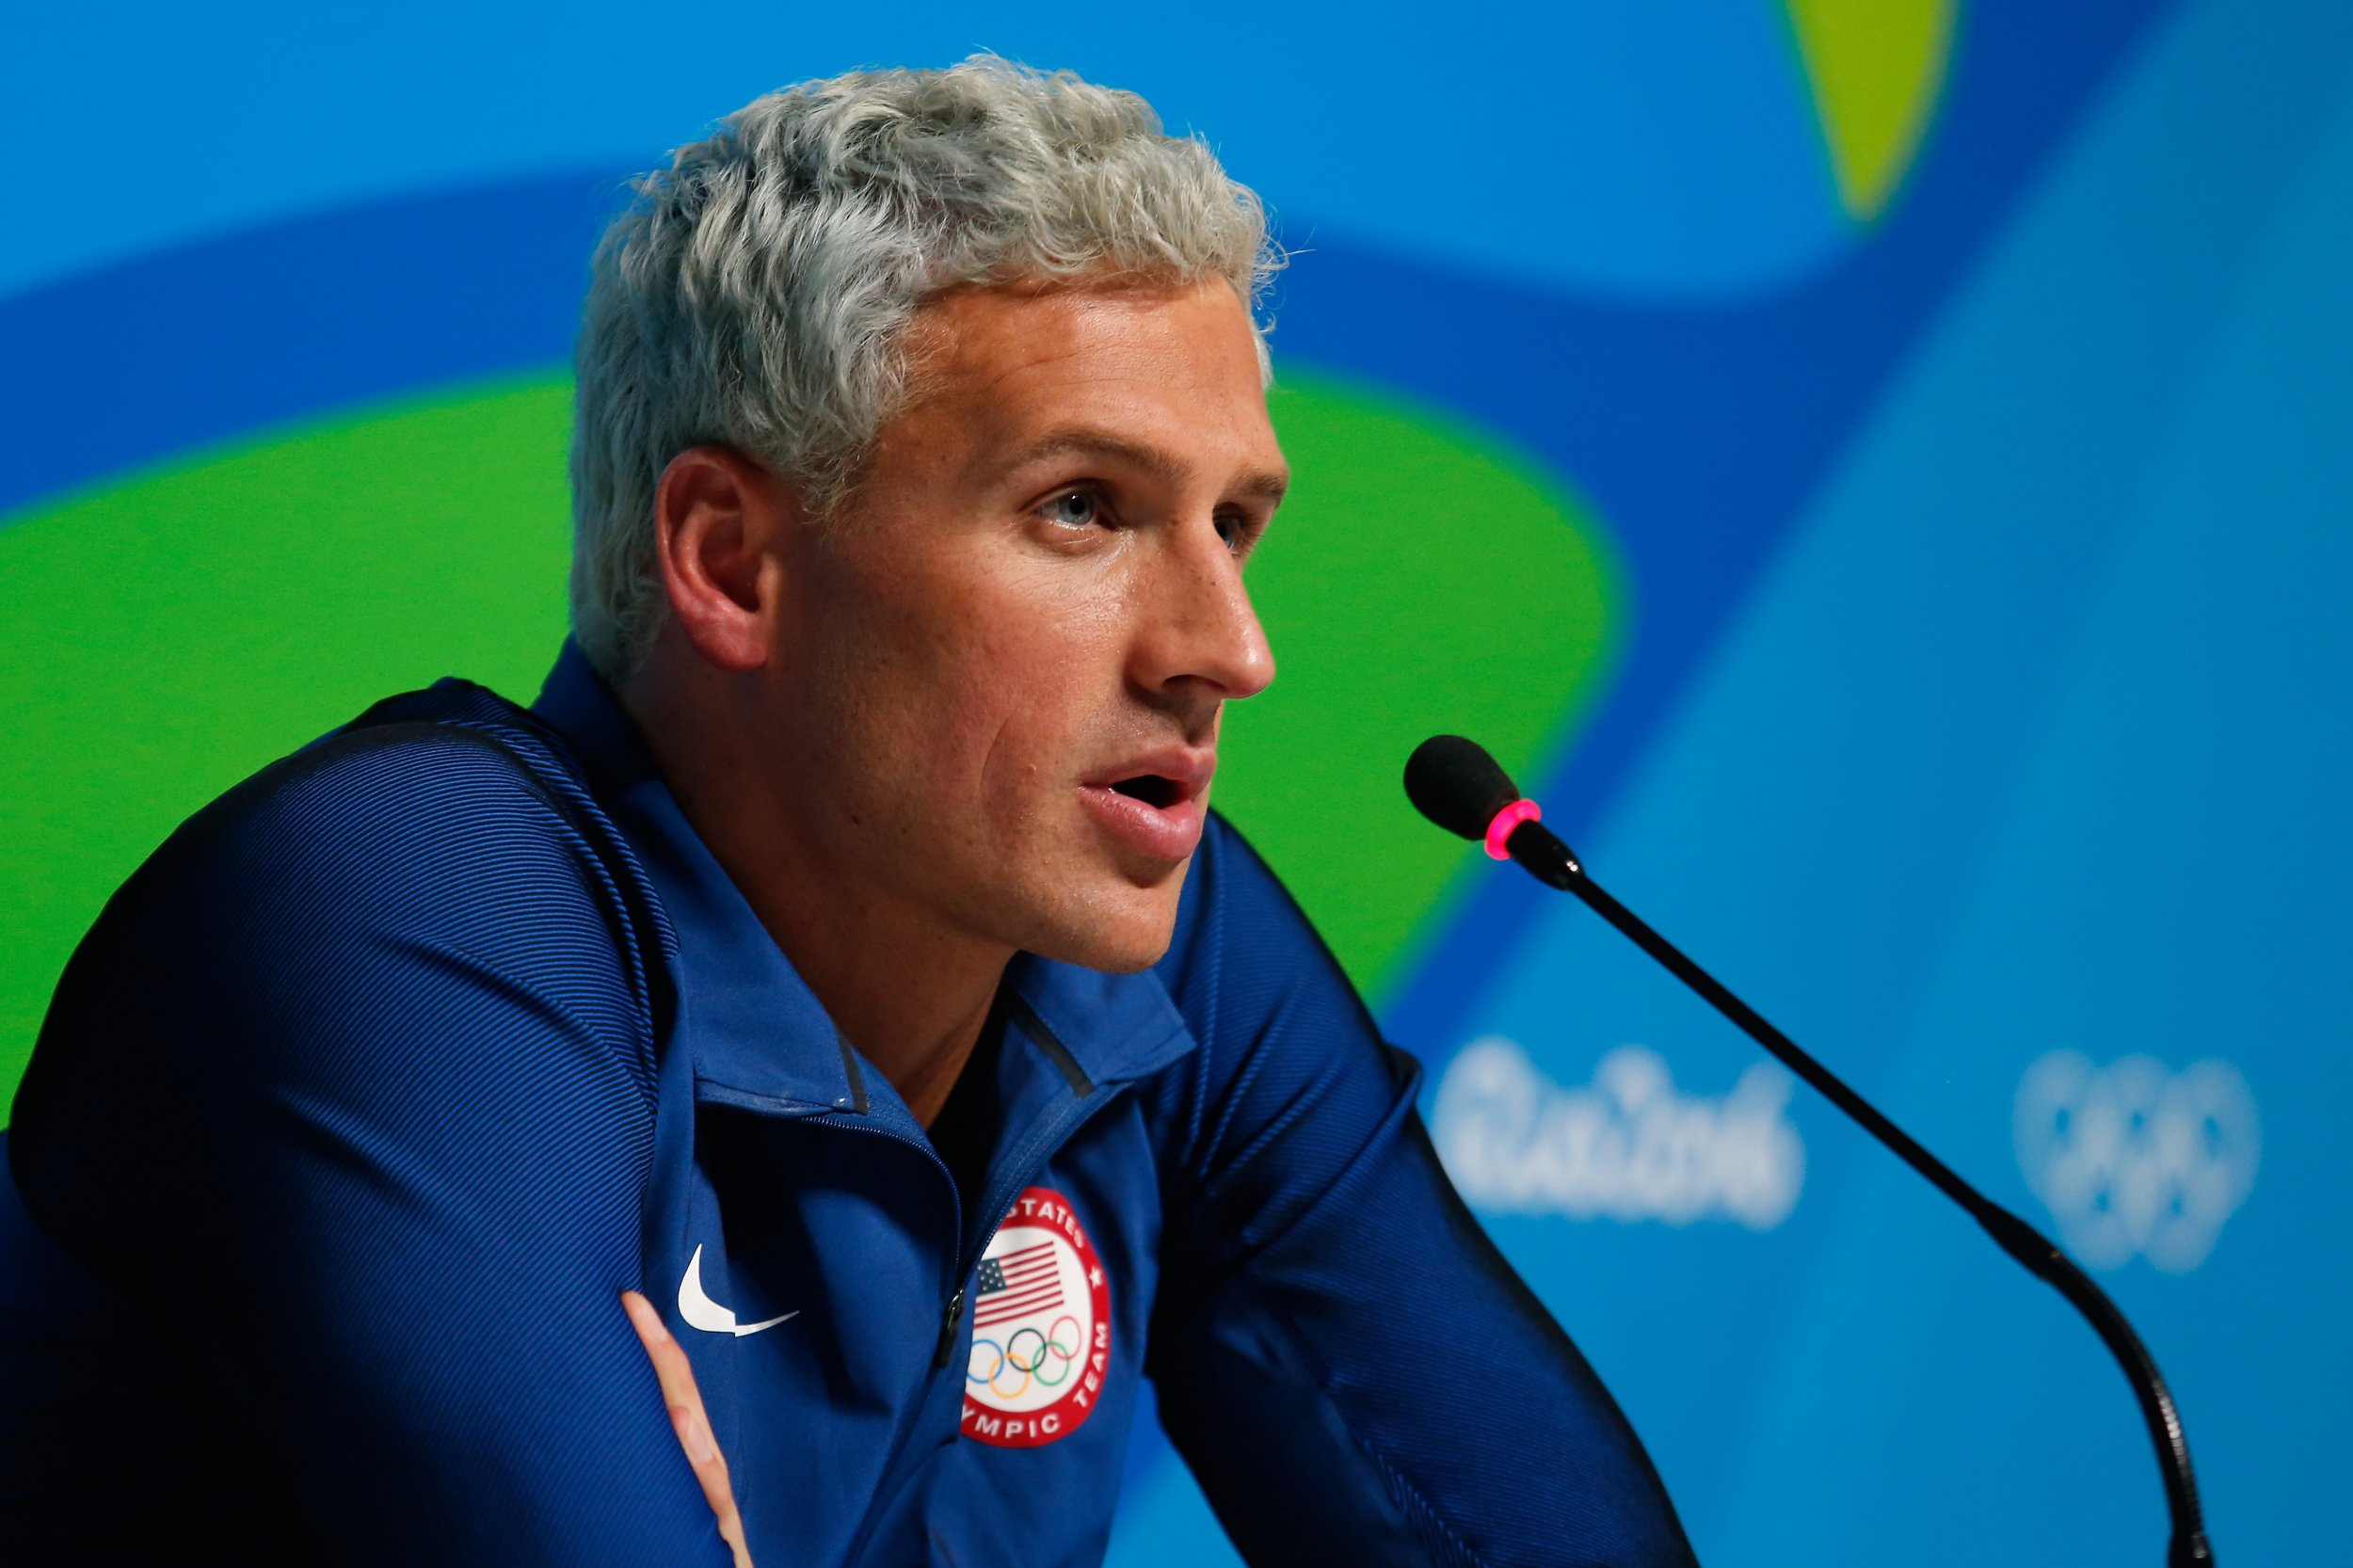 US gold medal winning swimmer Ryan Lochte